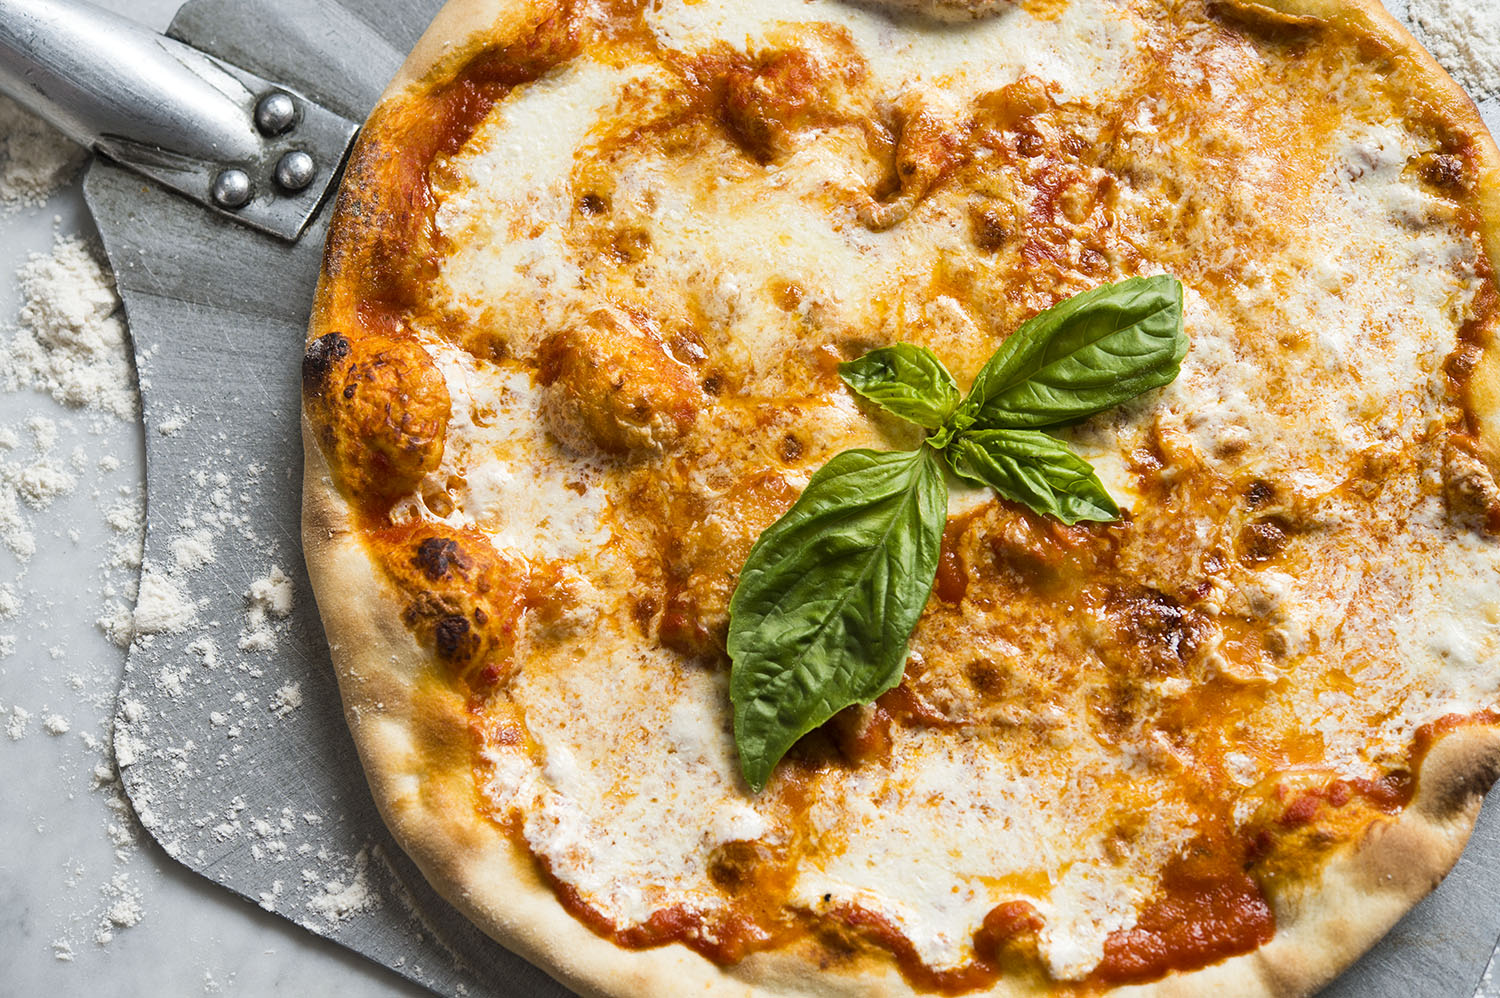 Mangia: Not Your Average Pizza Delivery